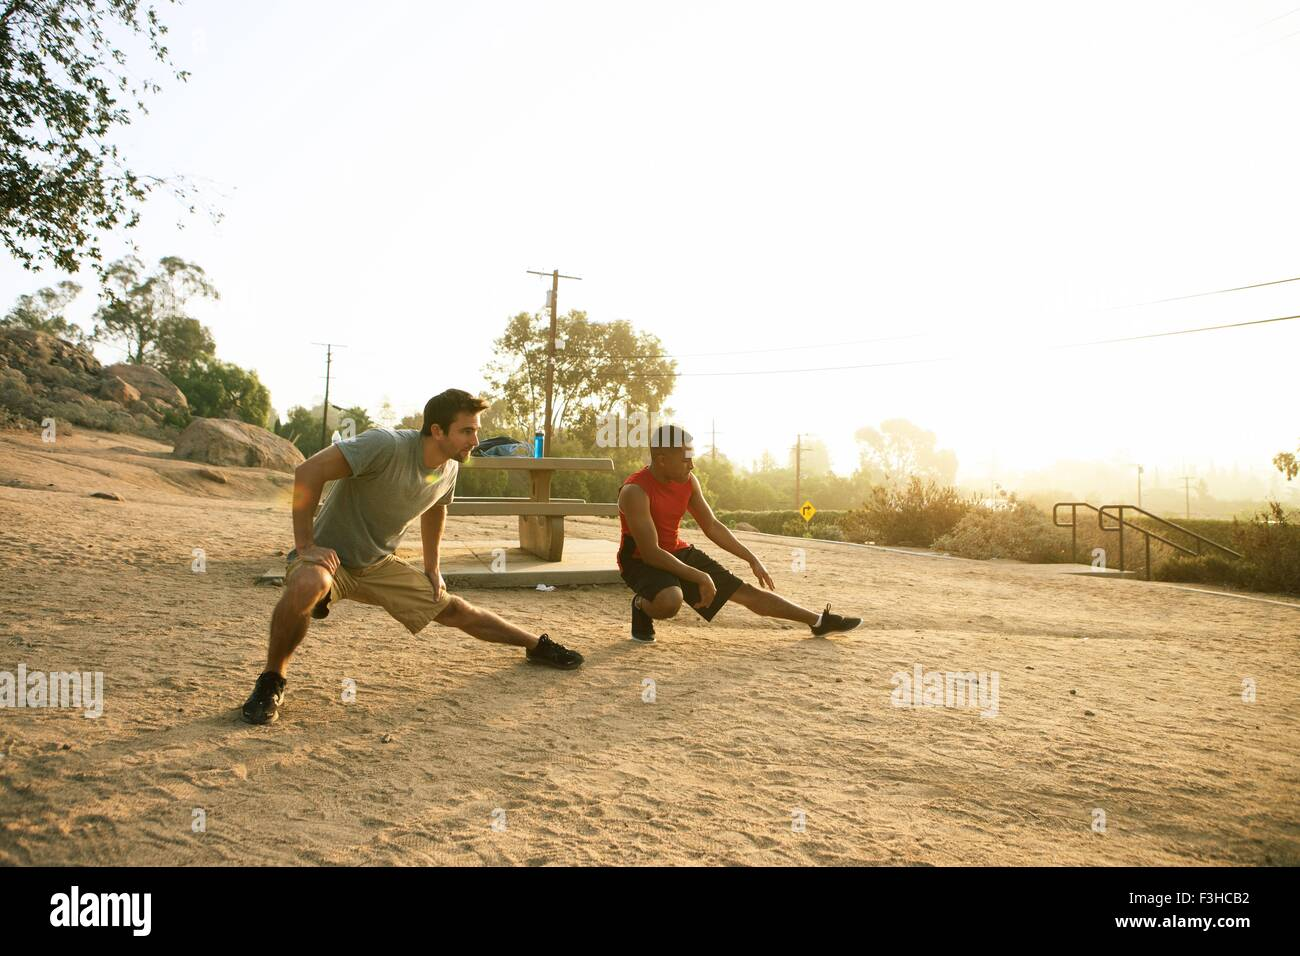 Two male friends working out together, outdoors Stock Photo